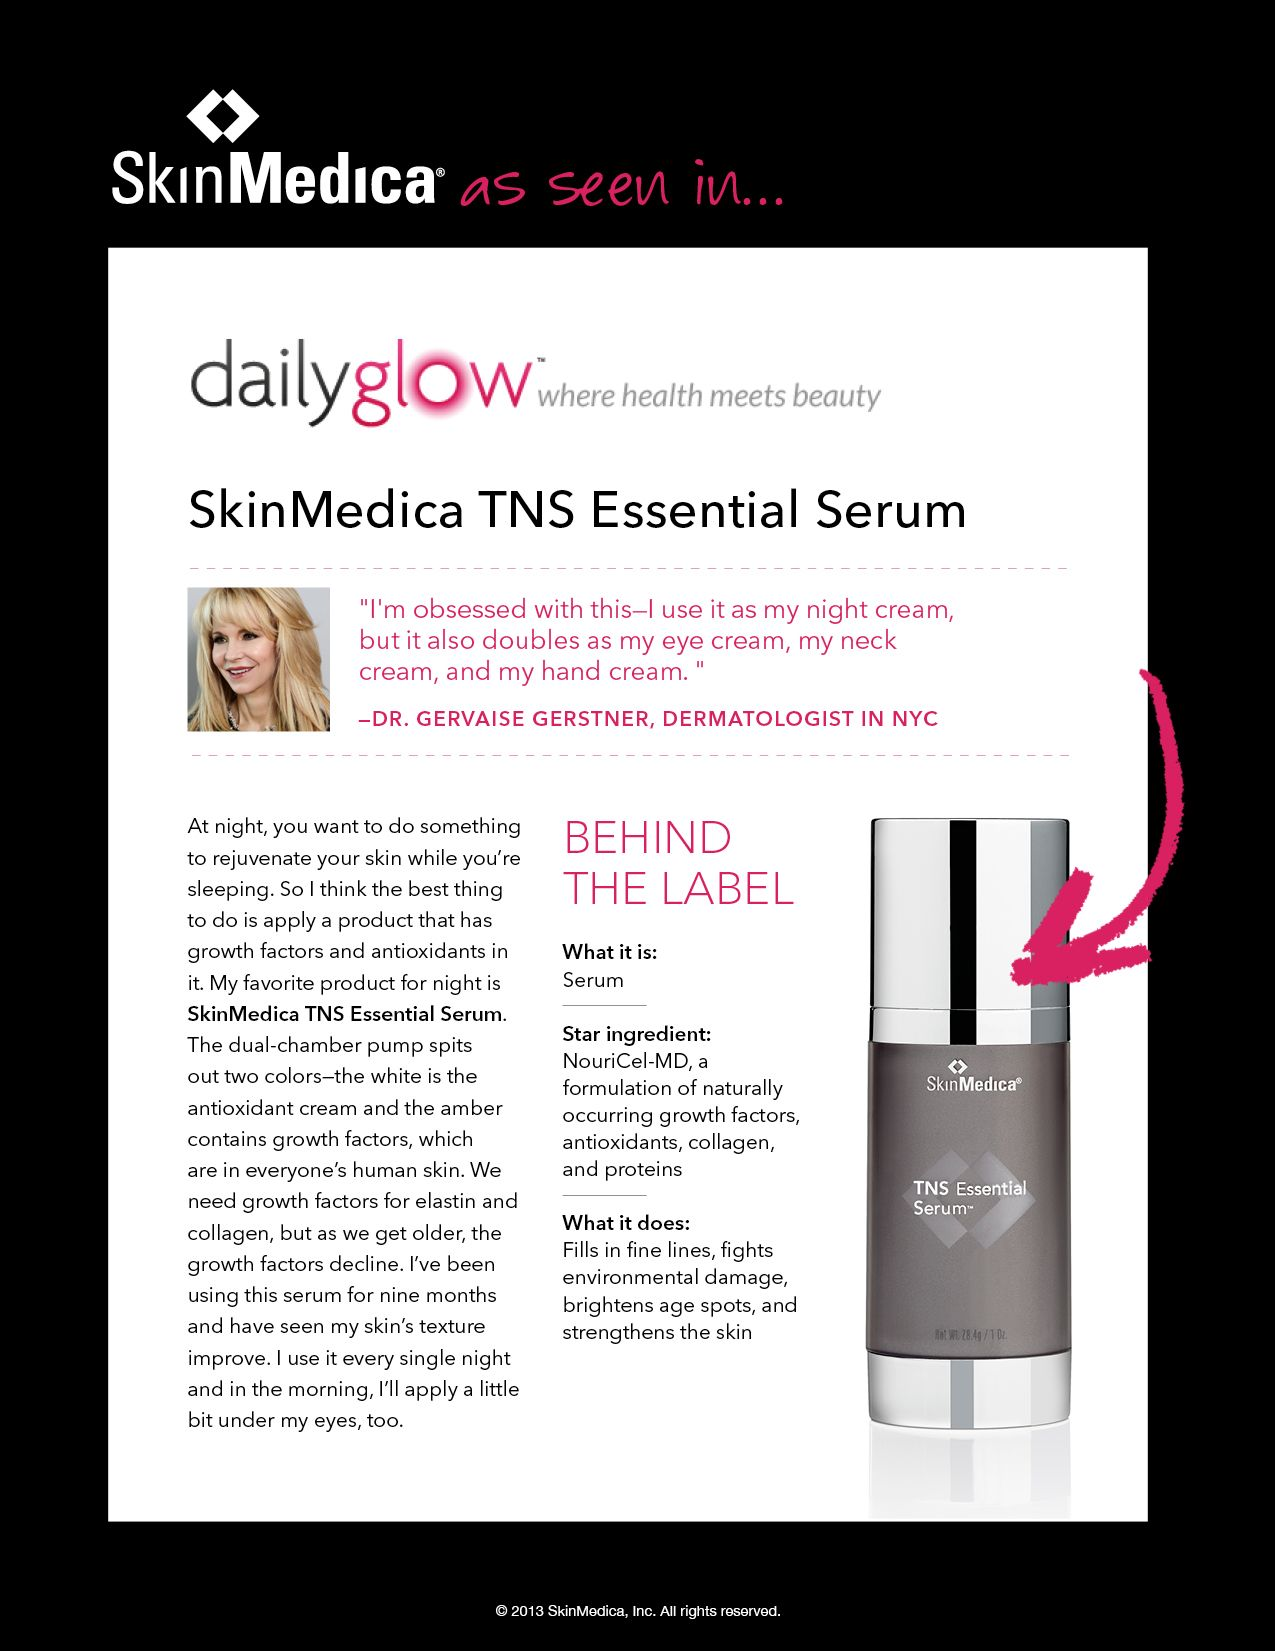 Tns Essential Serum Is The Ultimate Multi Tasker Dr Gervaise Gerstner Tells Daily Glow She Skin Medica Age Defying Skin Care Professional Skin Care Products